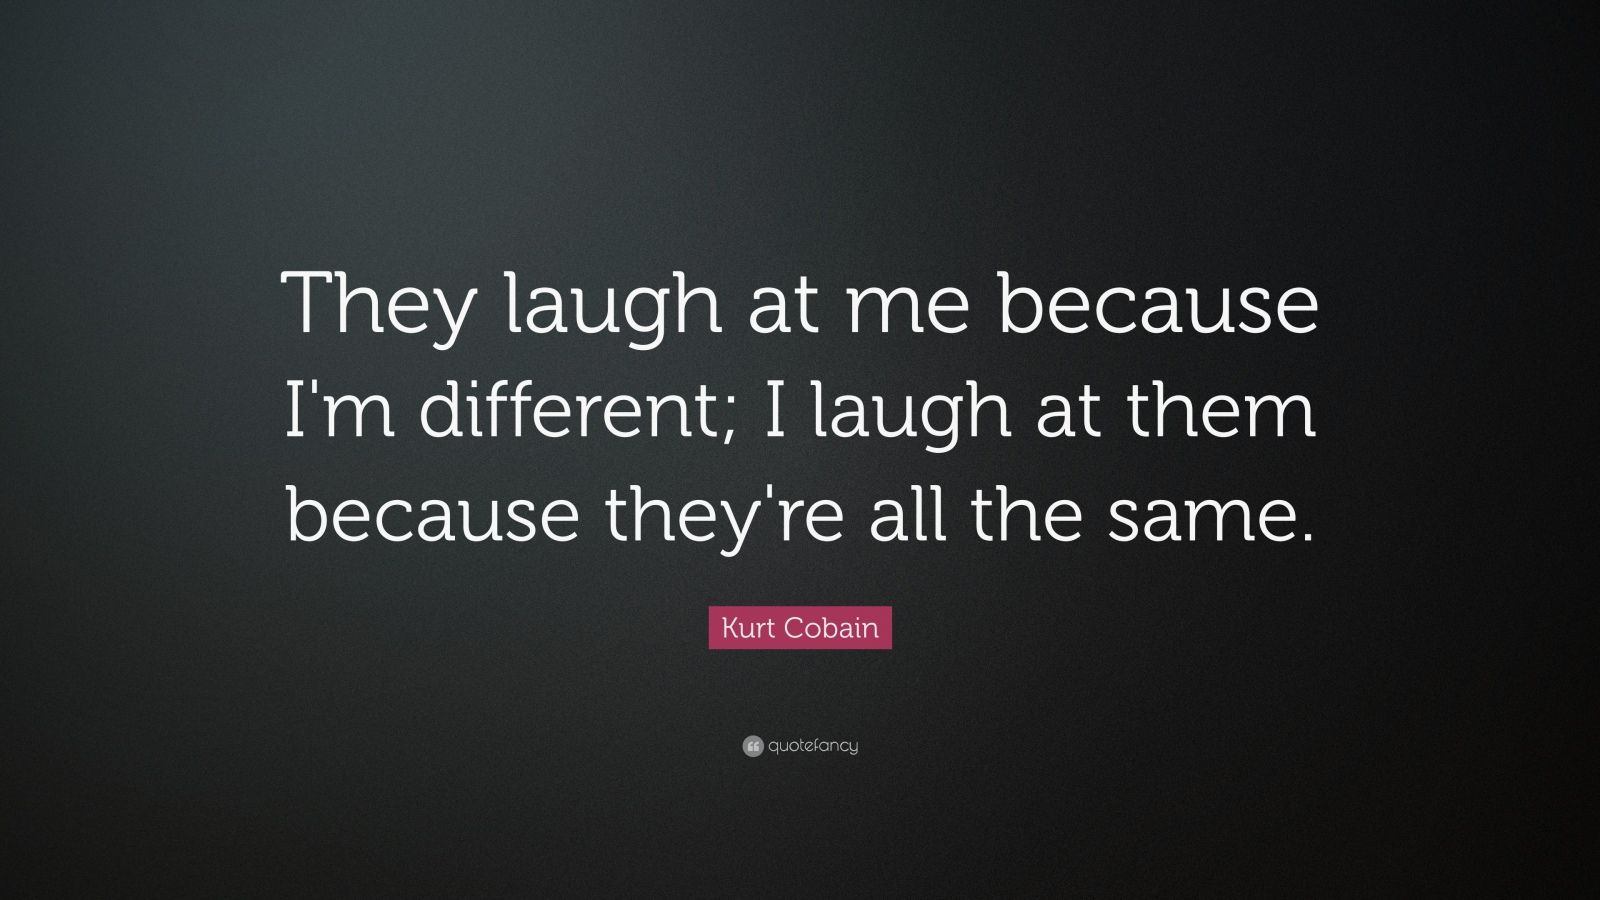 """Kurt Cobain Quote: """"They laugh at me because I'm different; I laugh at them because they're all the same."""""""